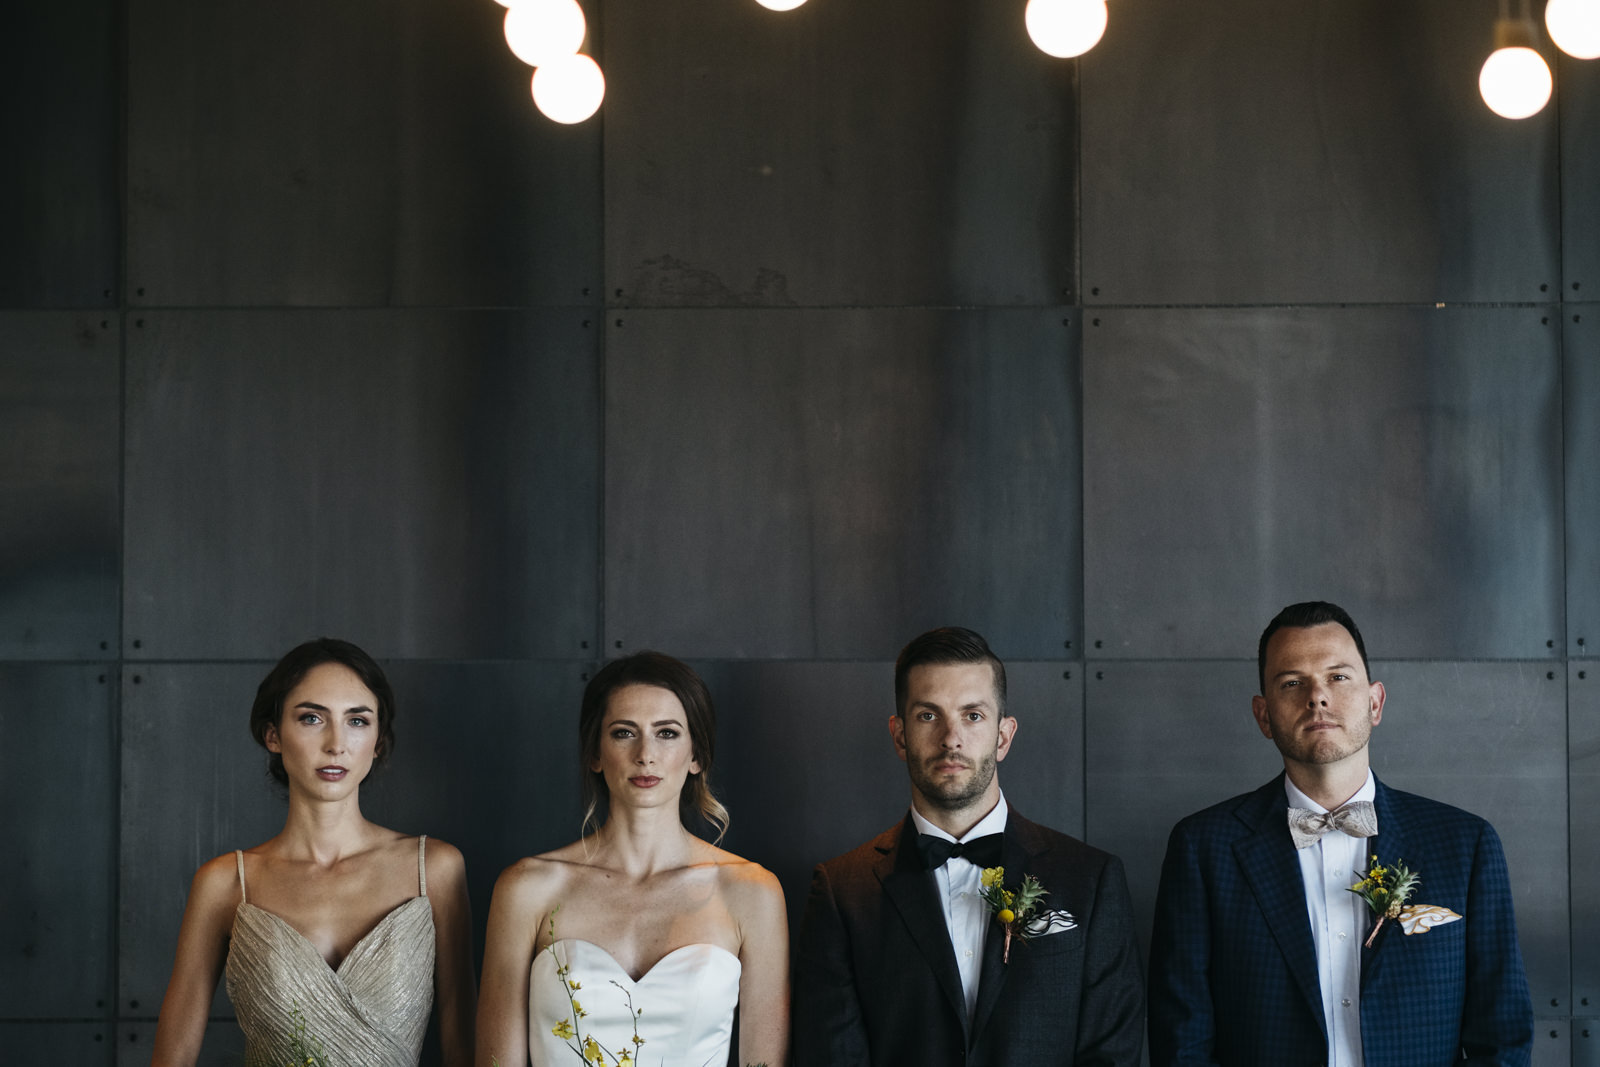 Bridal party poses for a group shot in the Renaissance Hotel in Toledo.